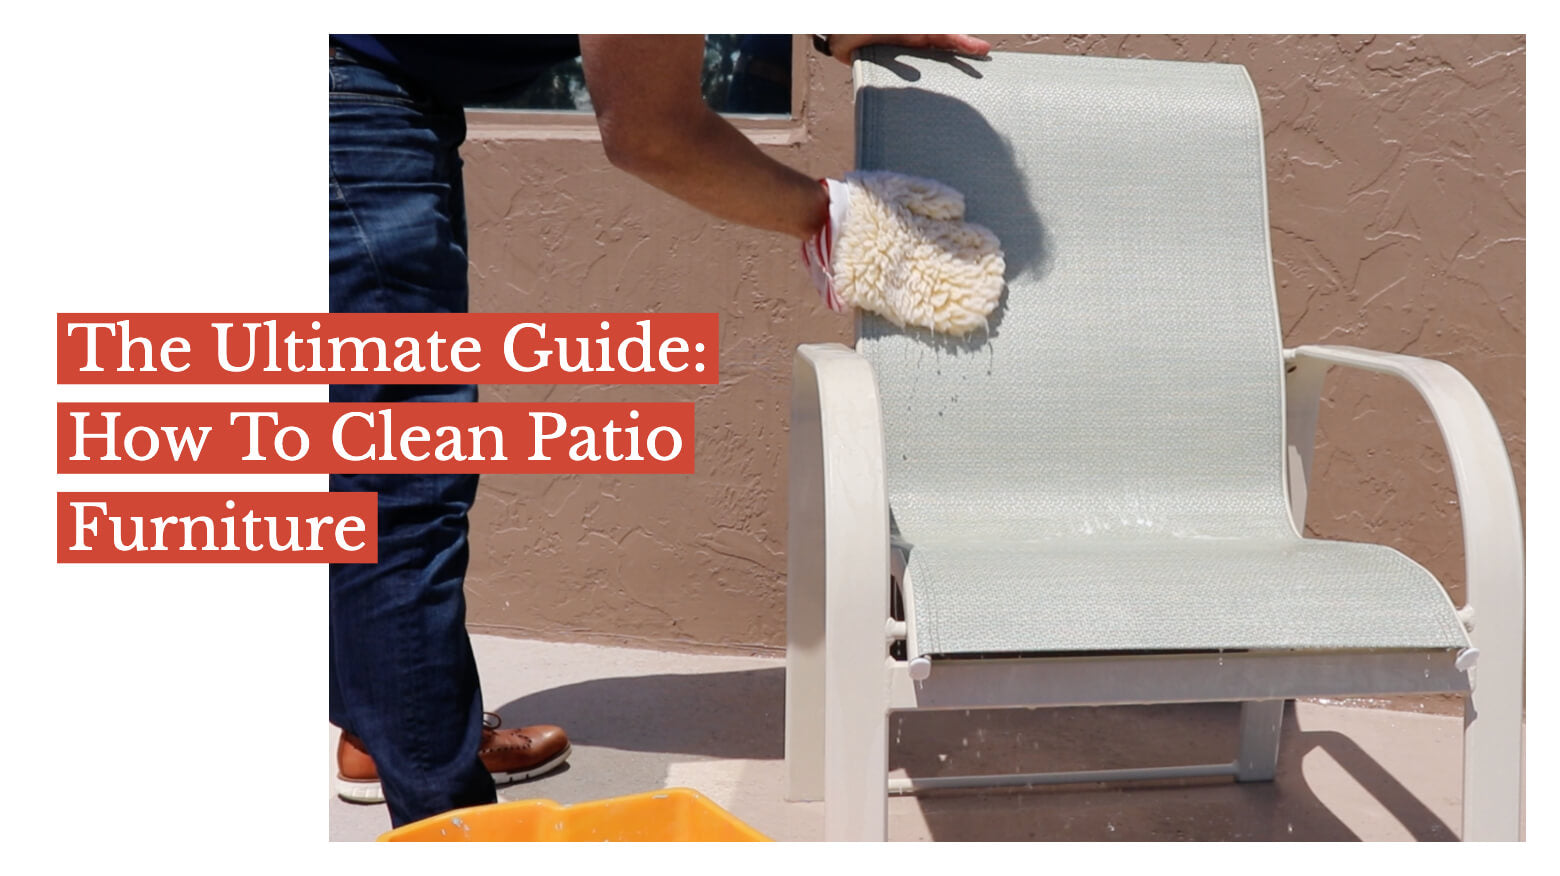 The Ultimate Guide: How to Clean Patio Furniture